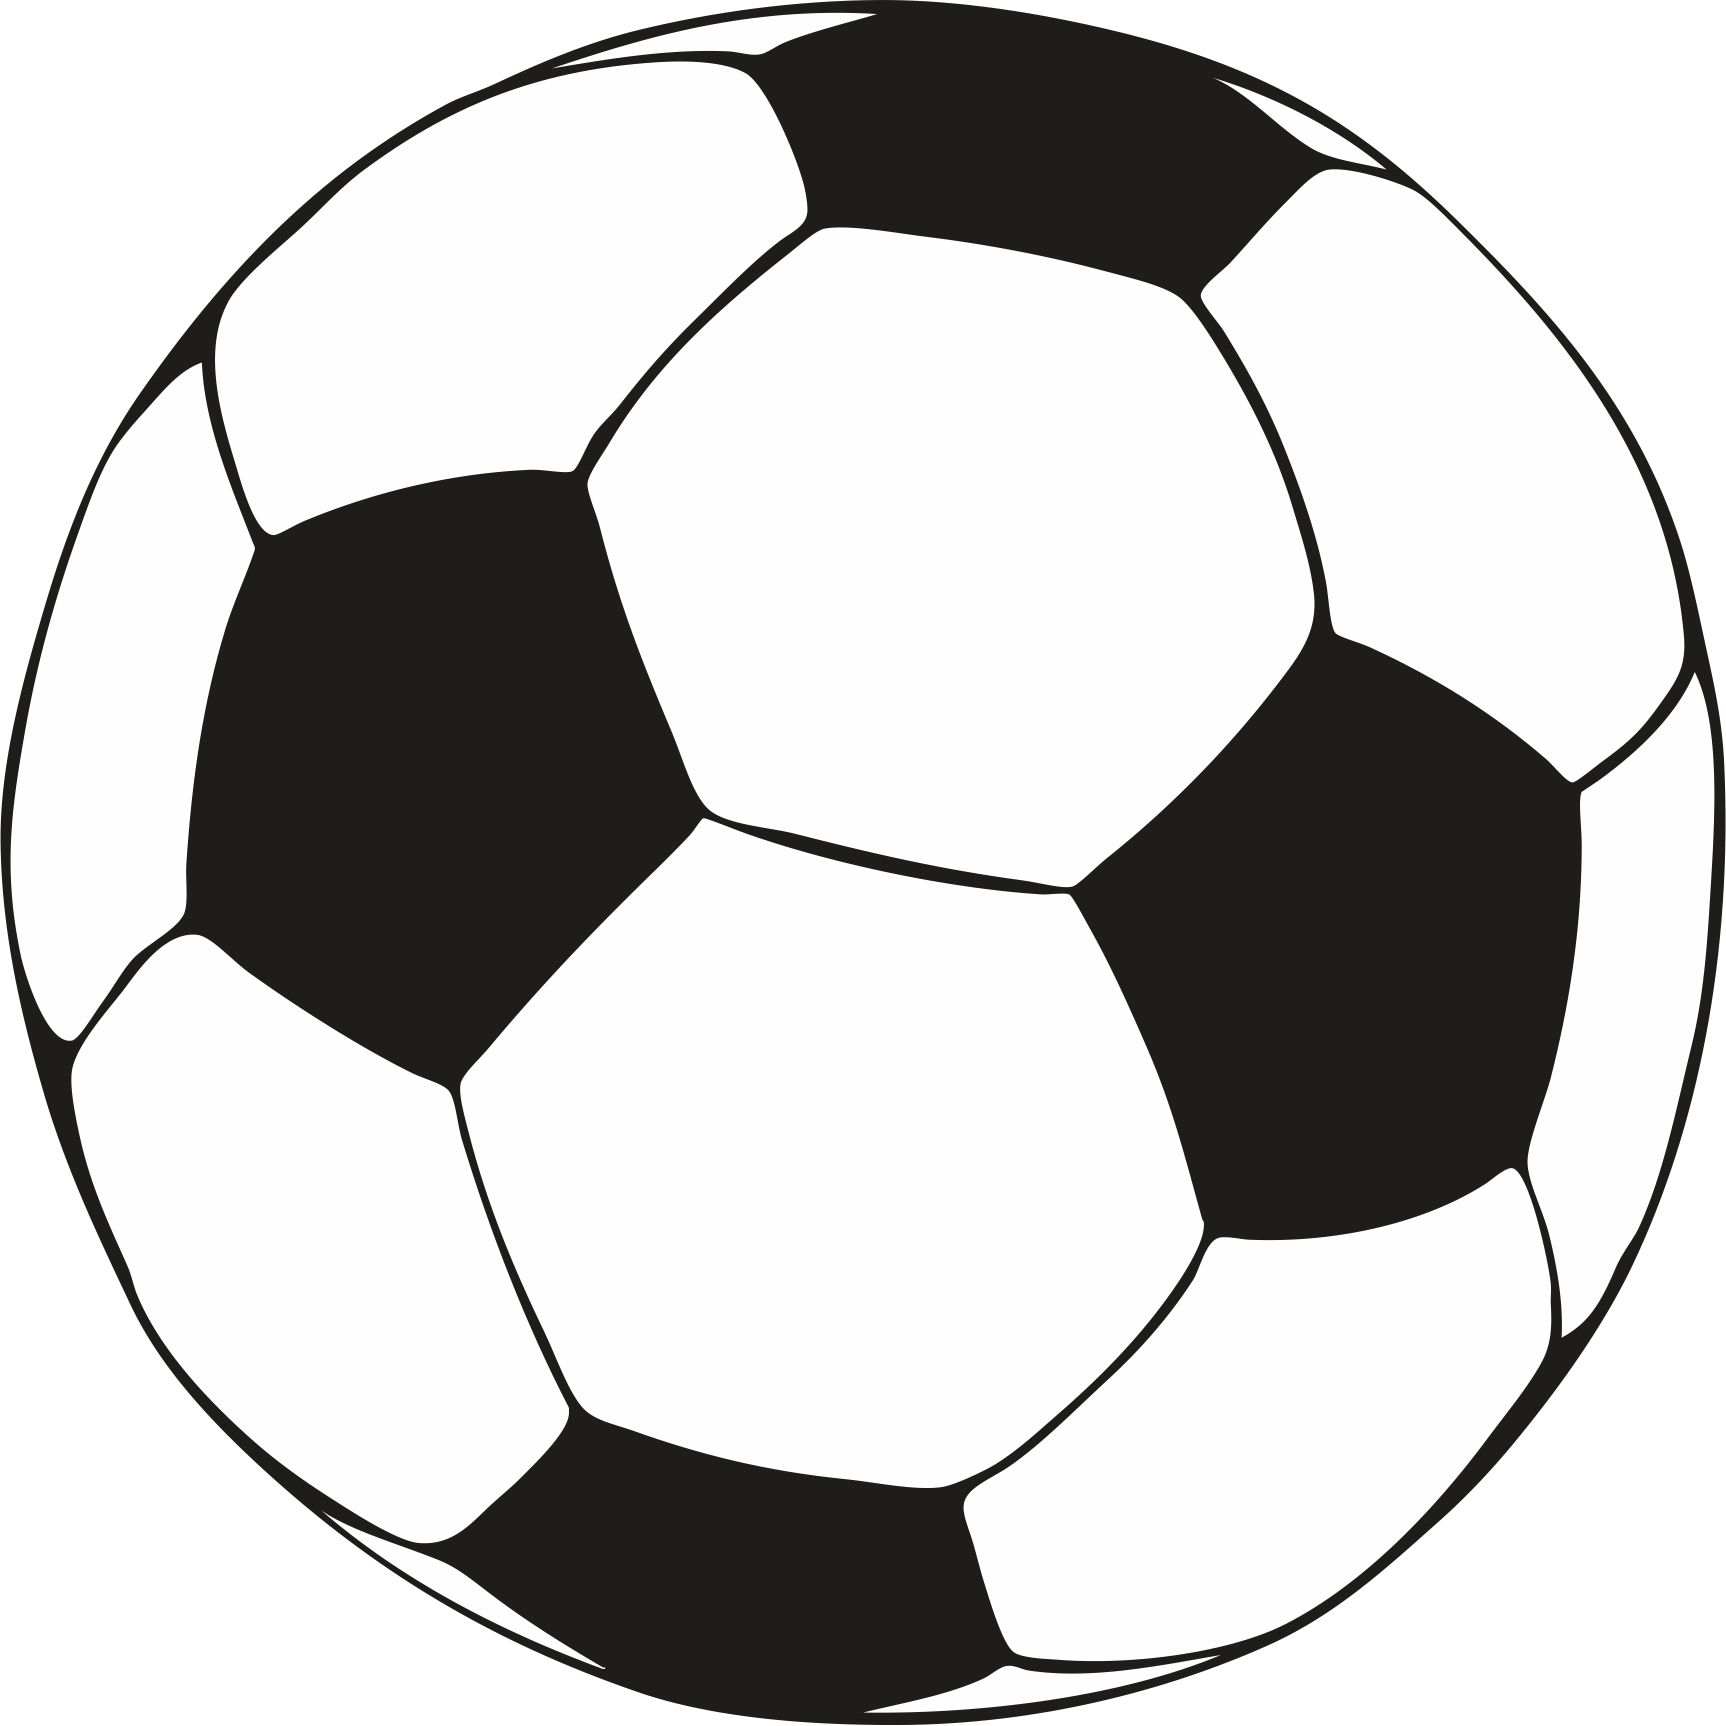 Soccer ball coloring pages download and print for free  Special Miscellany  Pinterest  Soccer